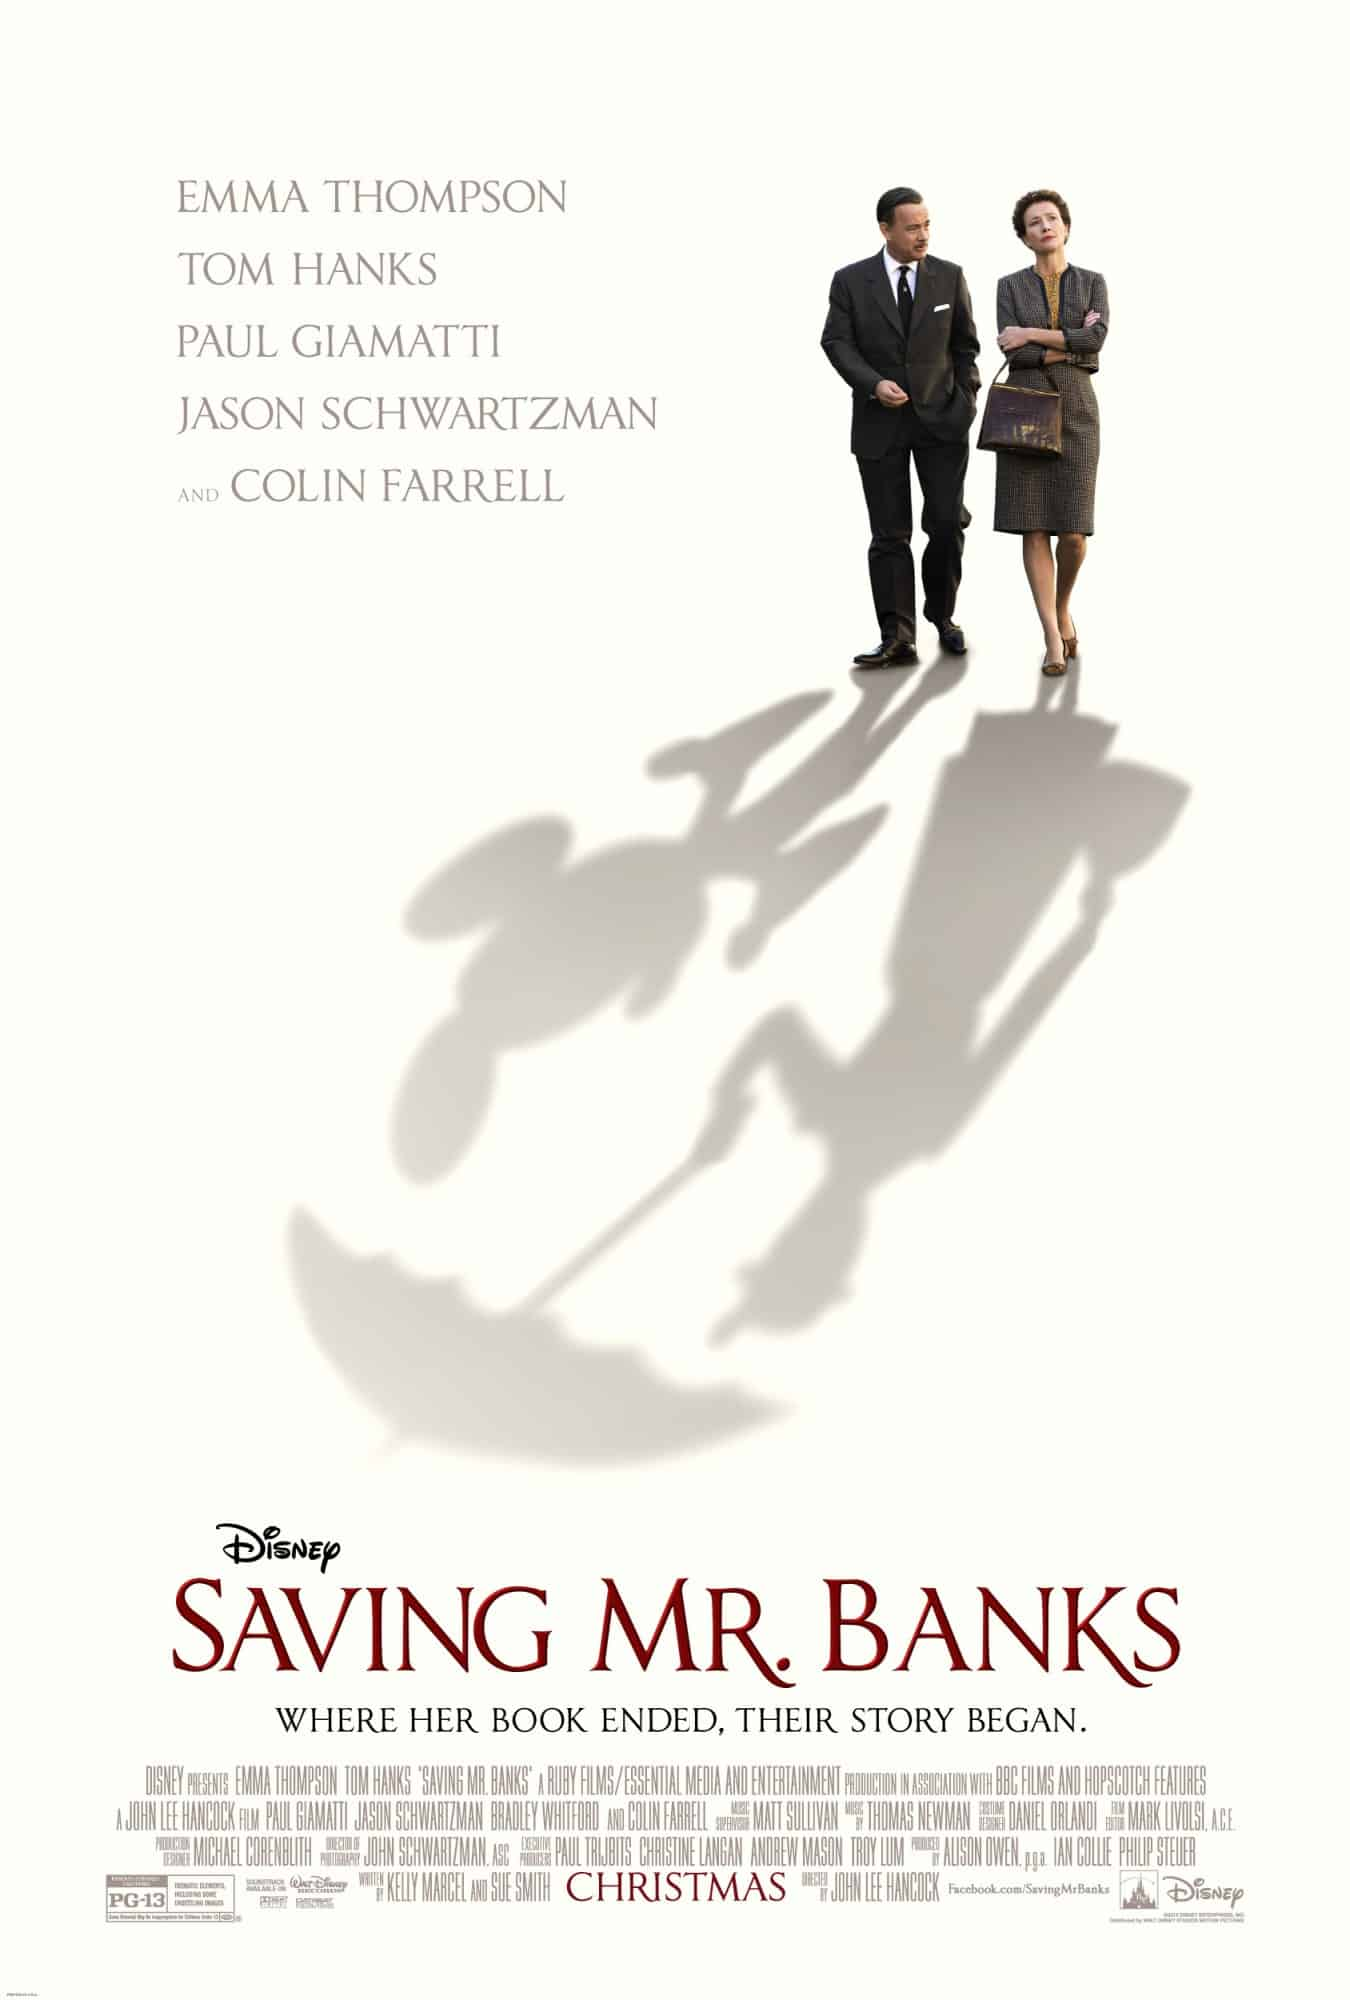 Saving Mr. Banks teaser poster